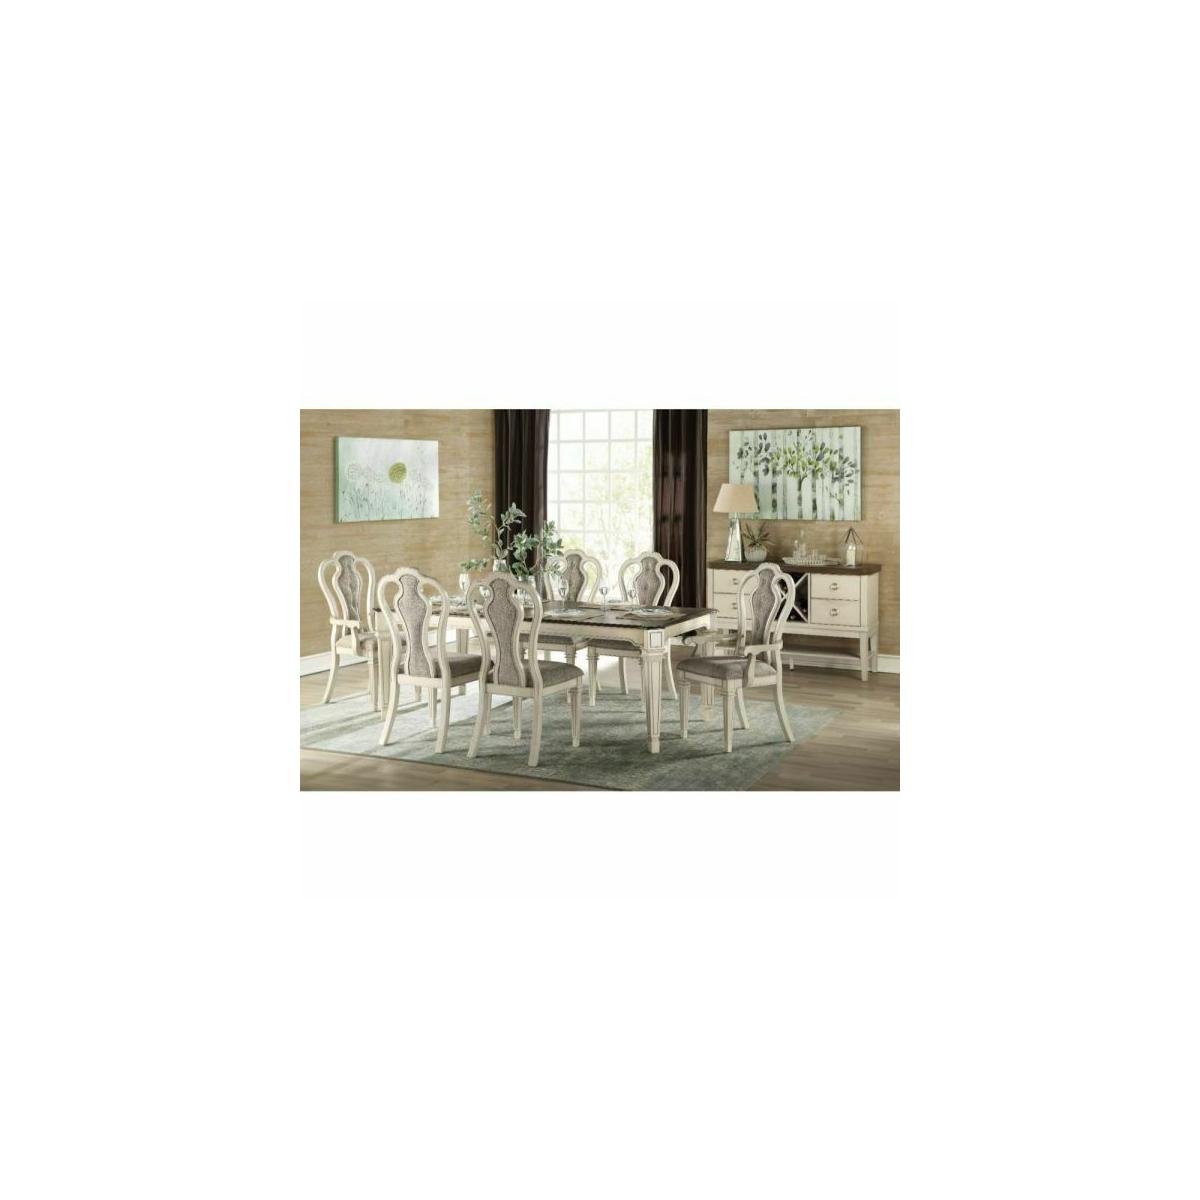 ACME Kayley Dining Table - 77135 - Antique White & Dark Oak